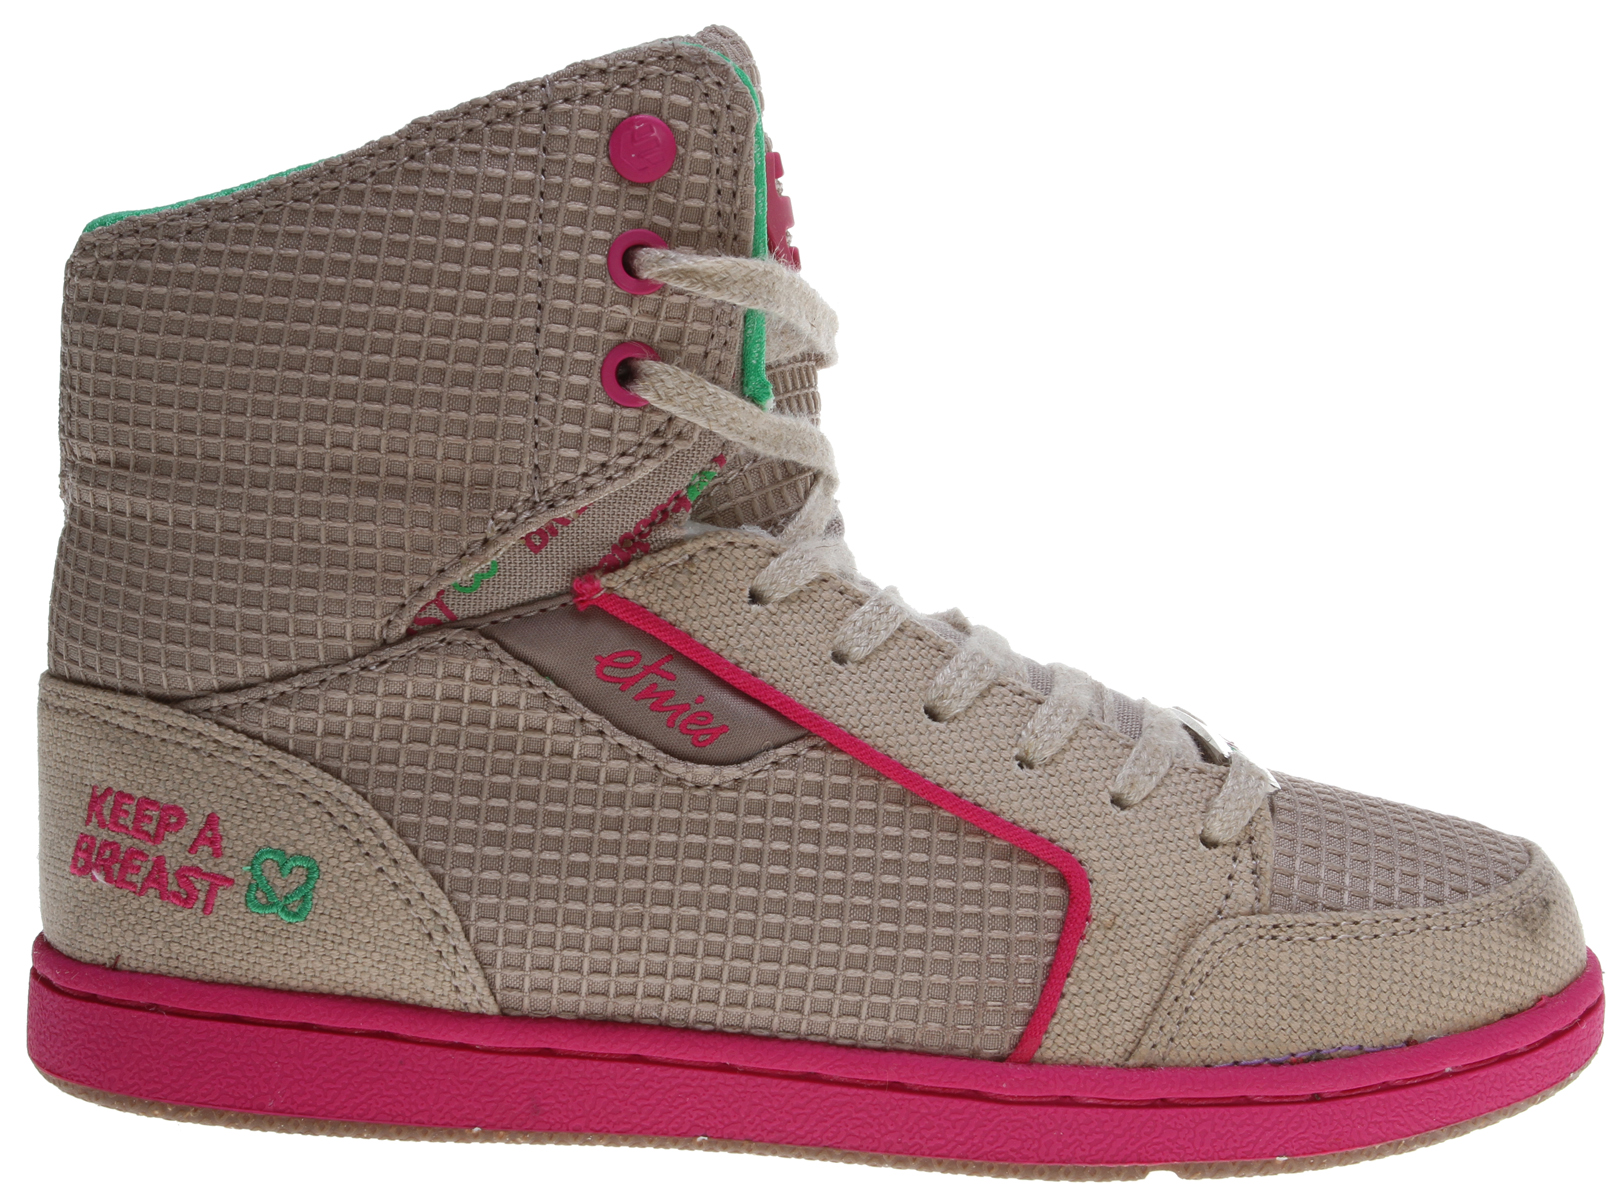 Camp and Hike Etnies Woozy Boots - $41.95